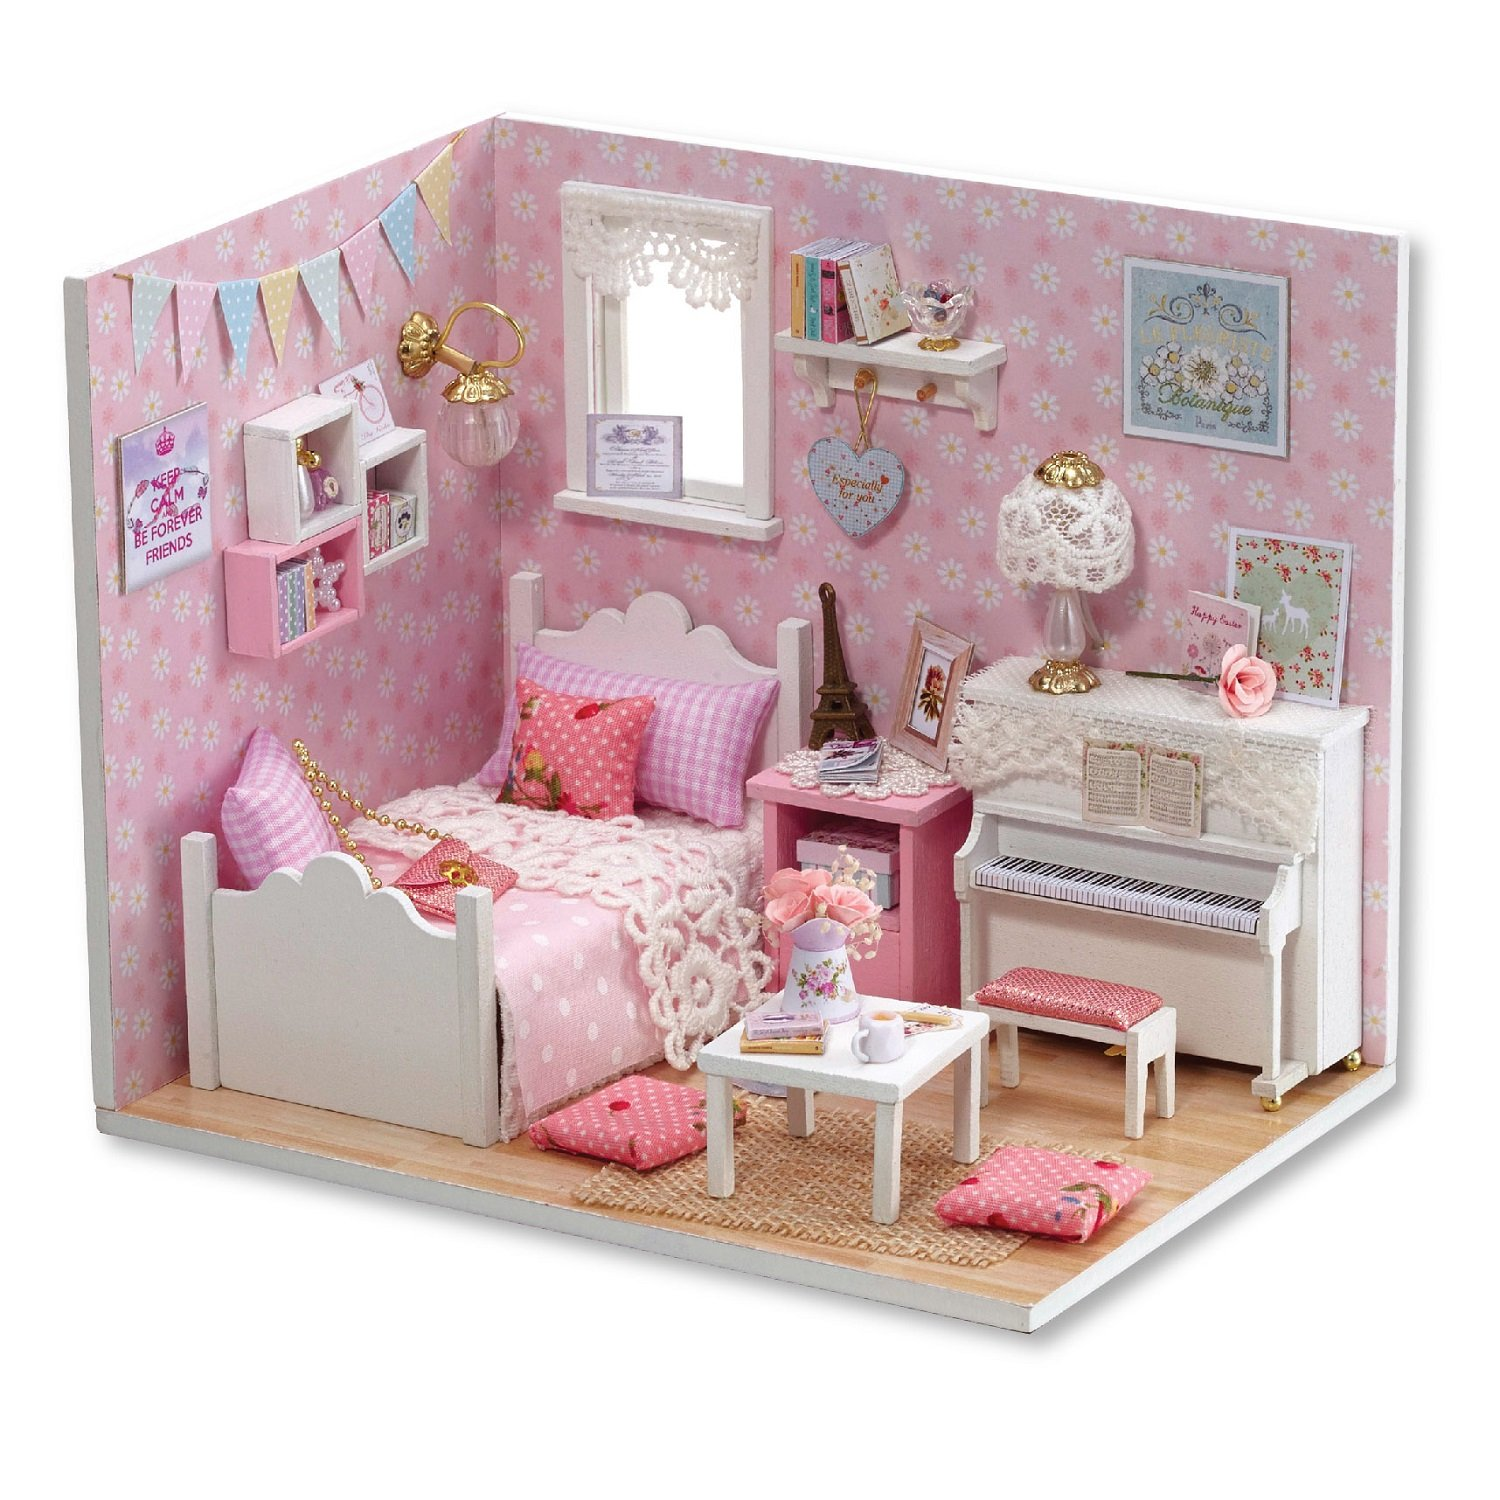 Cuteroom Diy Wooden Dollhouse Handmade Miniature Kit Sunshine Princess Bedroom Model Furniture Buy Online In Montenegro At Desertcart Com Productid 60580263